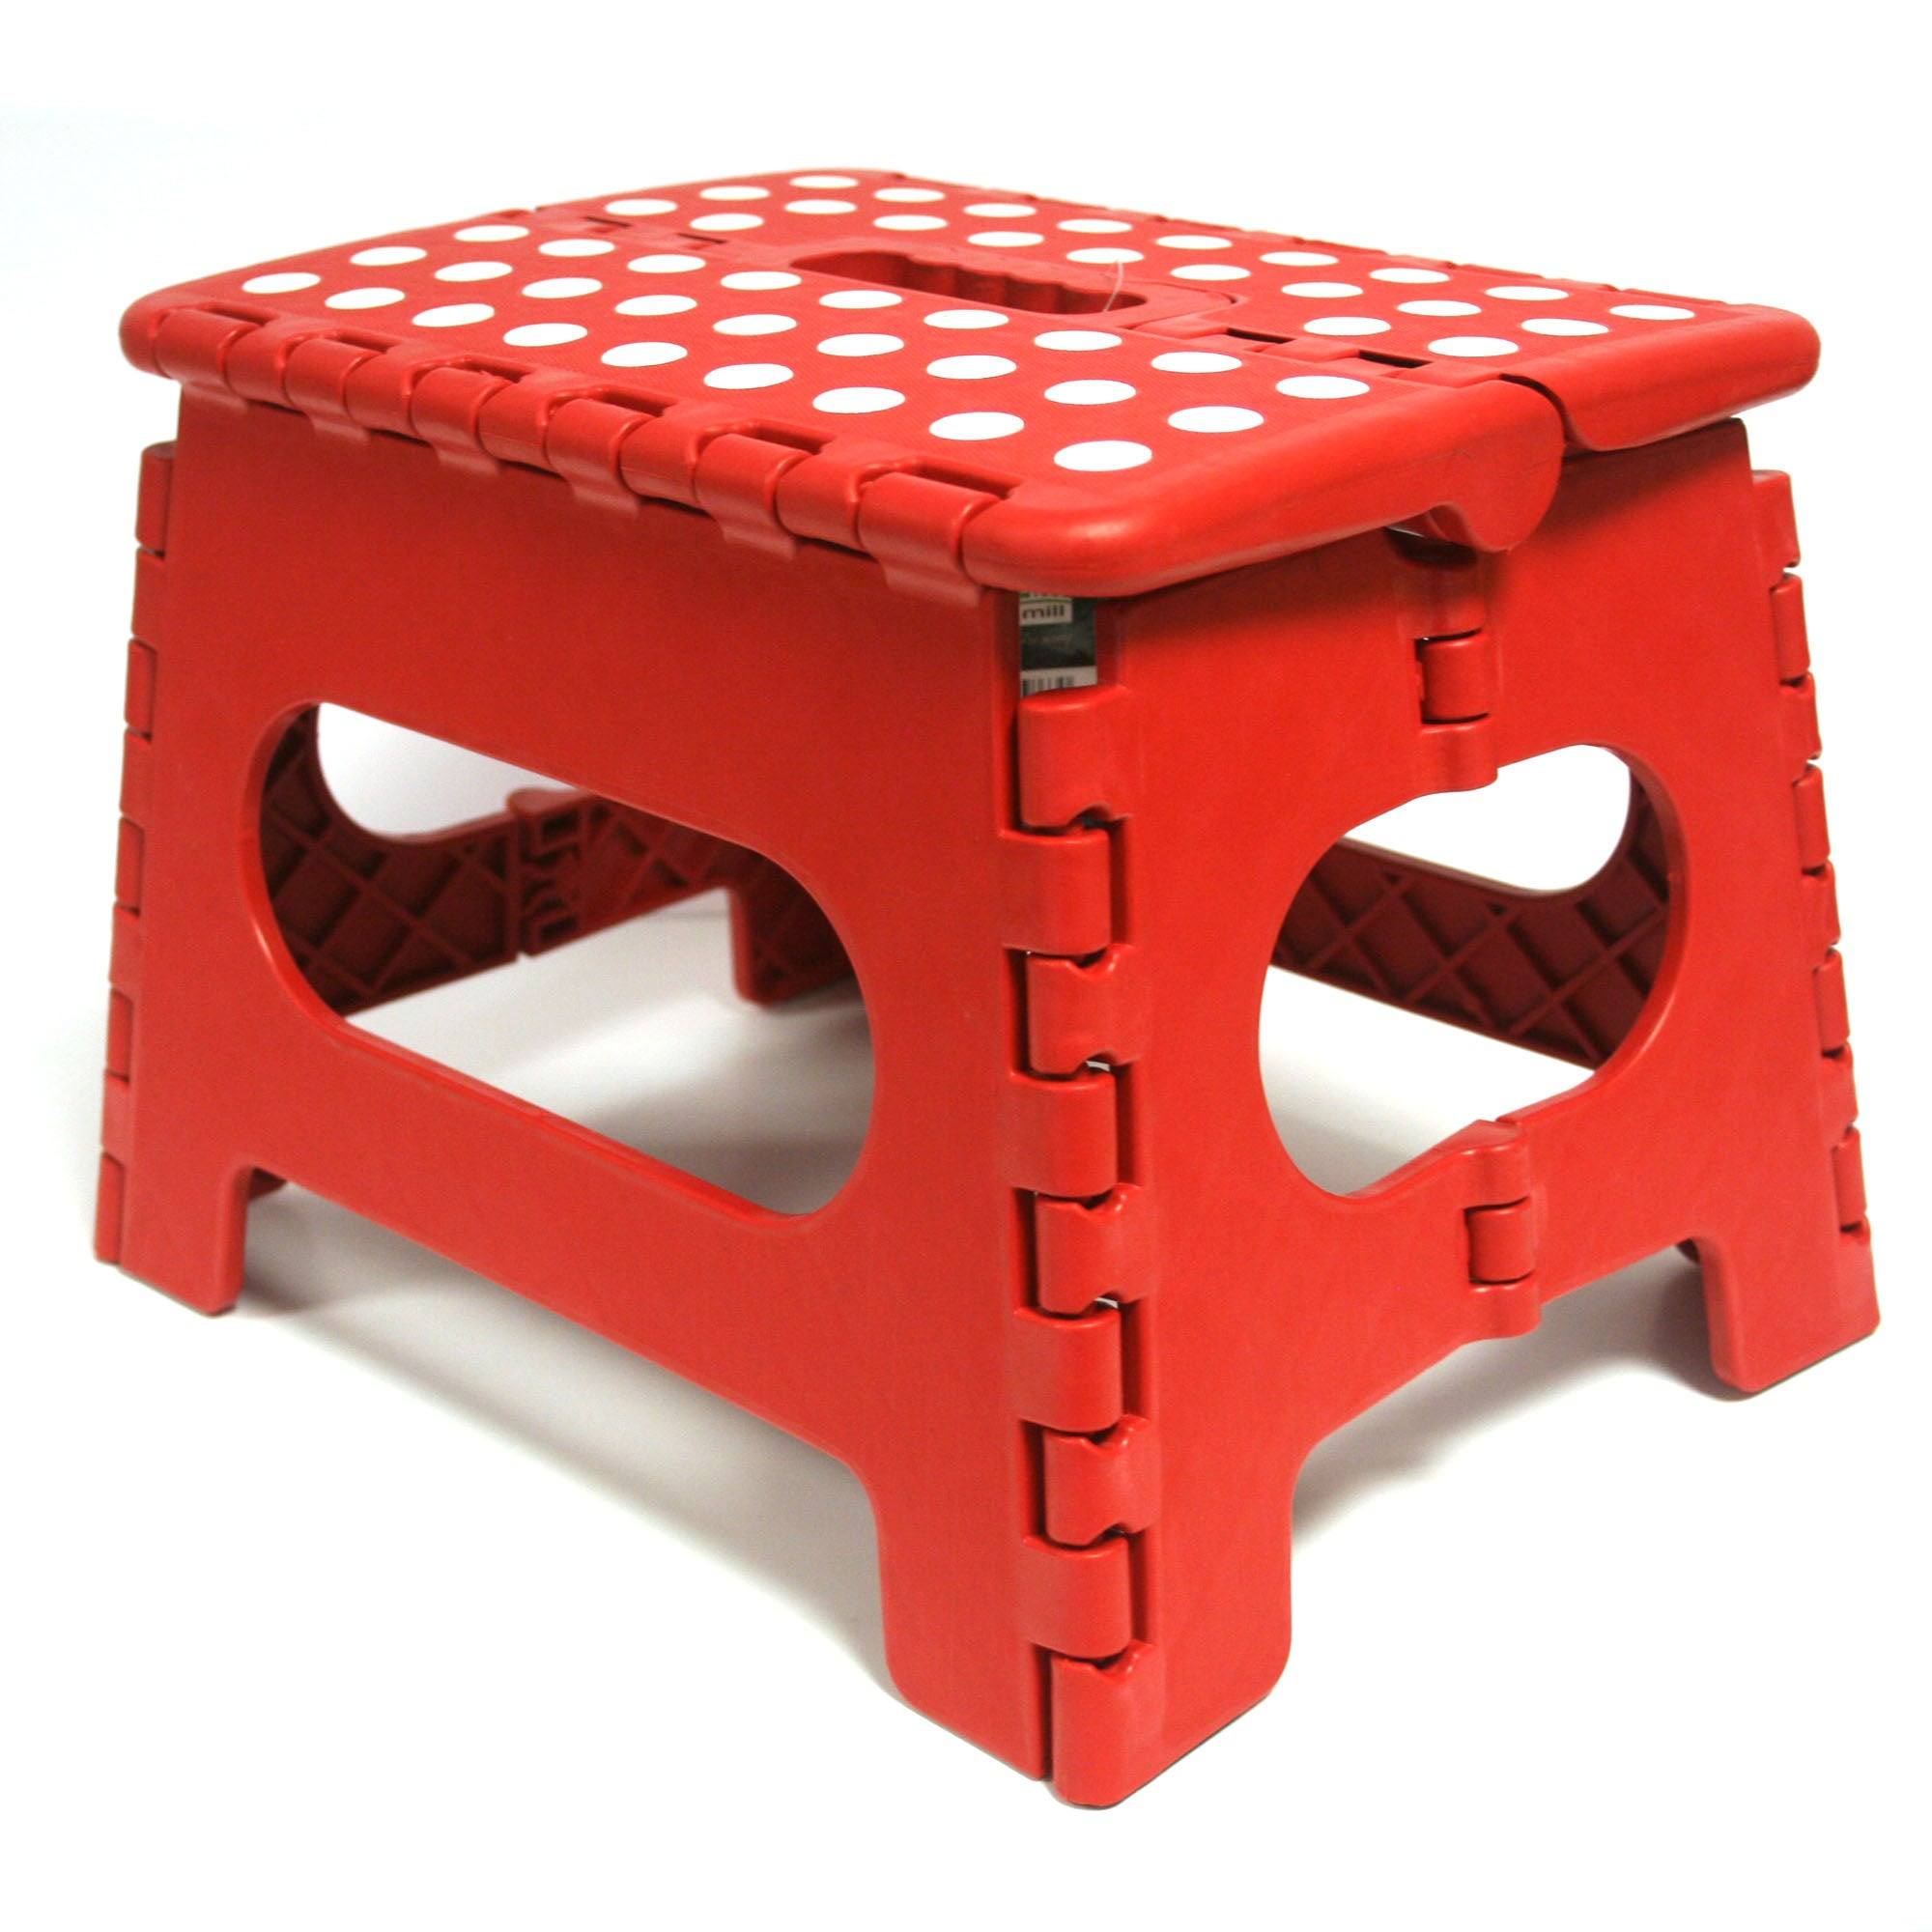 Simply Foldable Step Stool